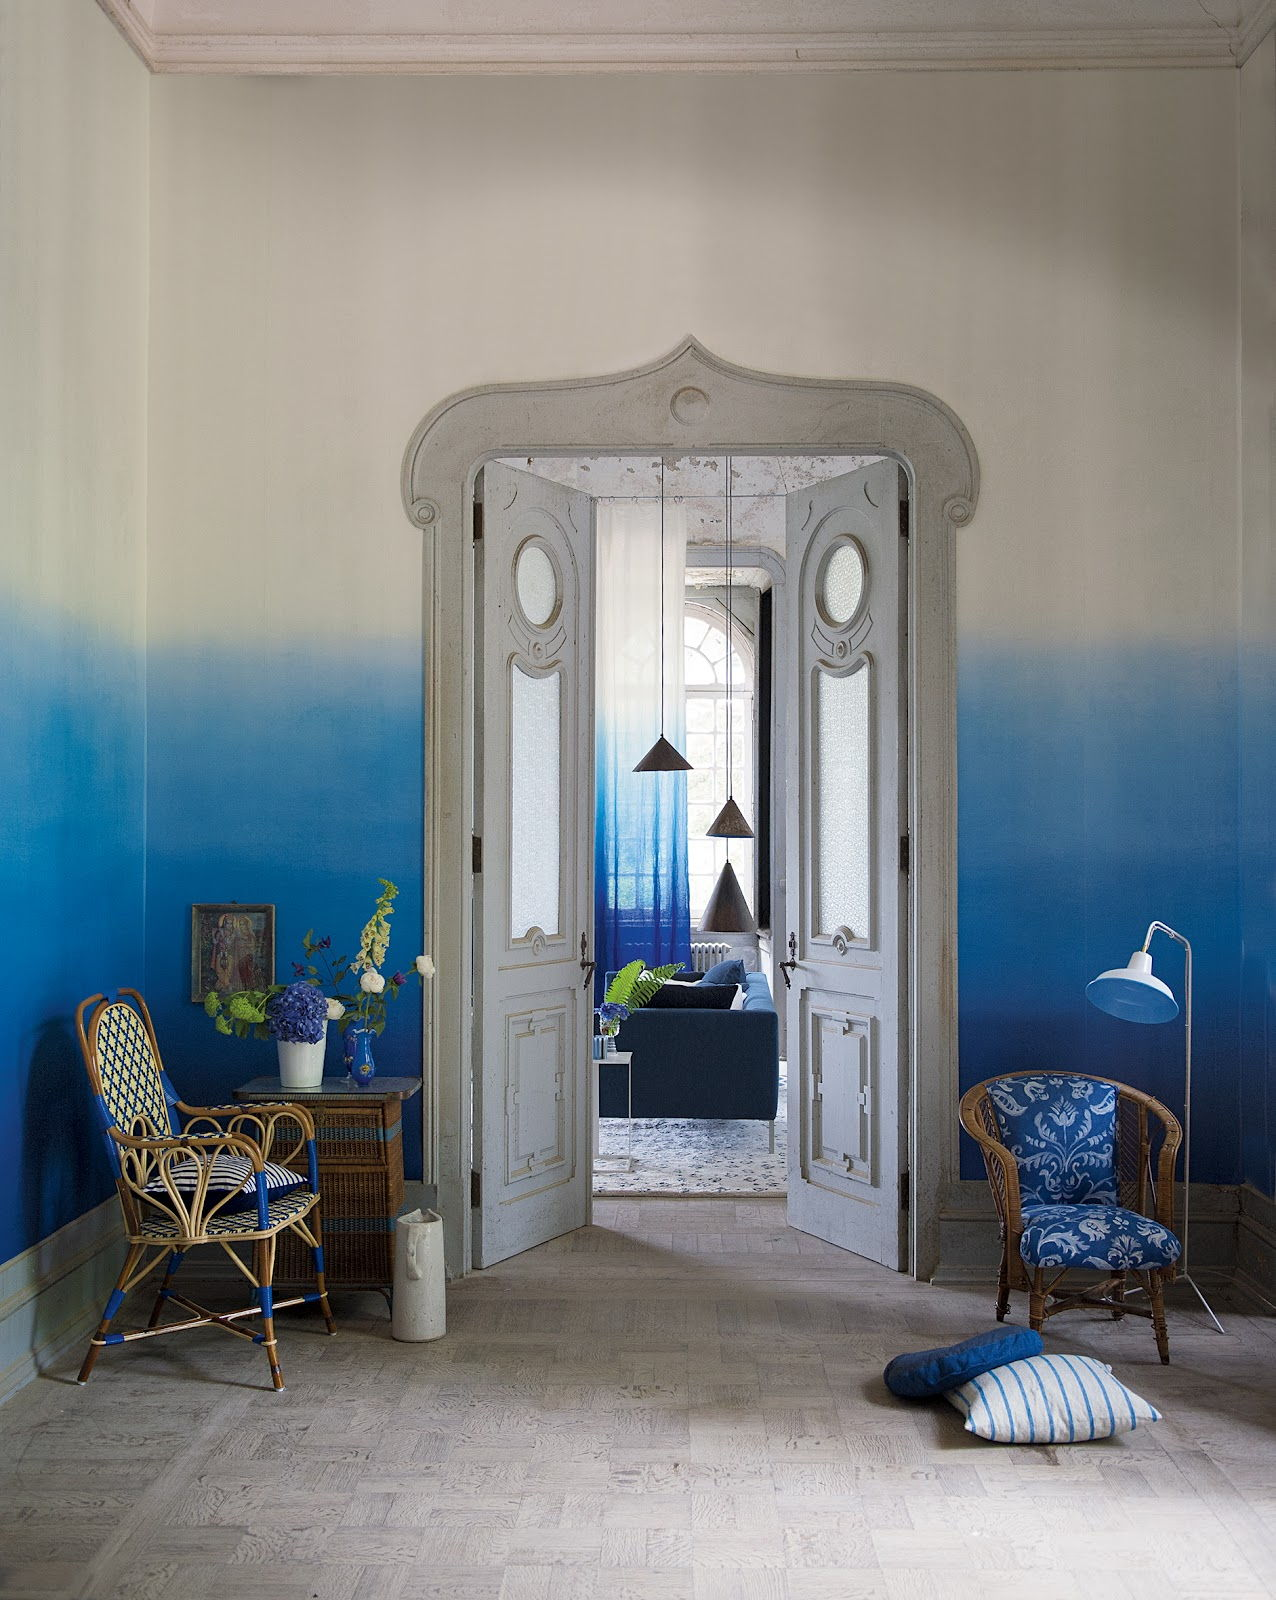 Blue ombre walls